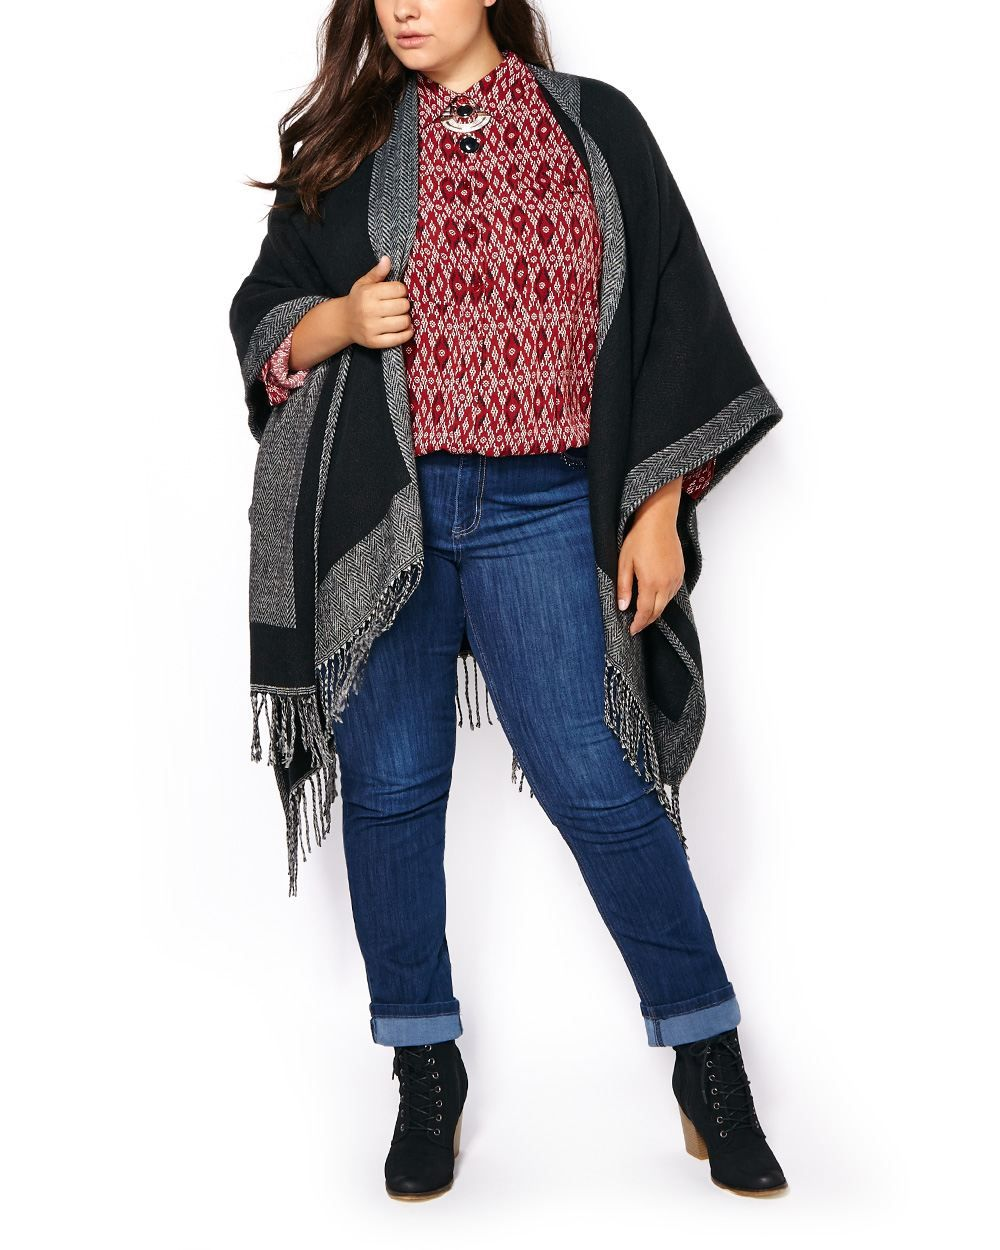 """Cover up for fall with this gorgeous plus-size cape! Made with a cozy knit fabric, it has a contrasting trim with chevron pattern, fringe hem and trendy cape design. A coveted top layer for cold days ahead! Length: 59"""", Width: 54"""""""